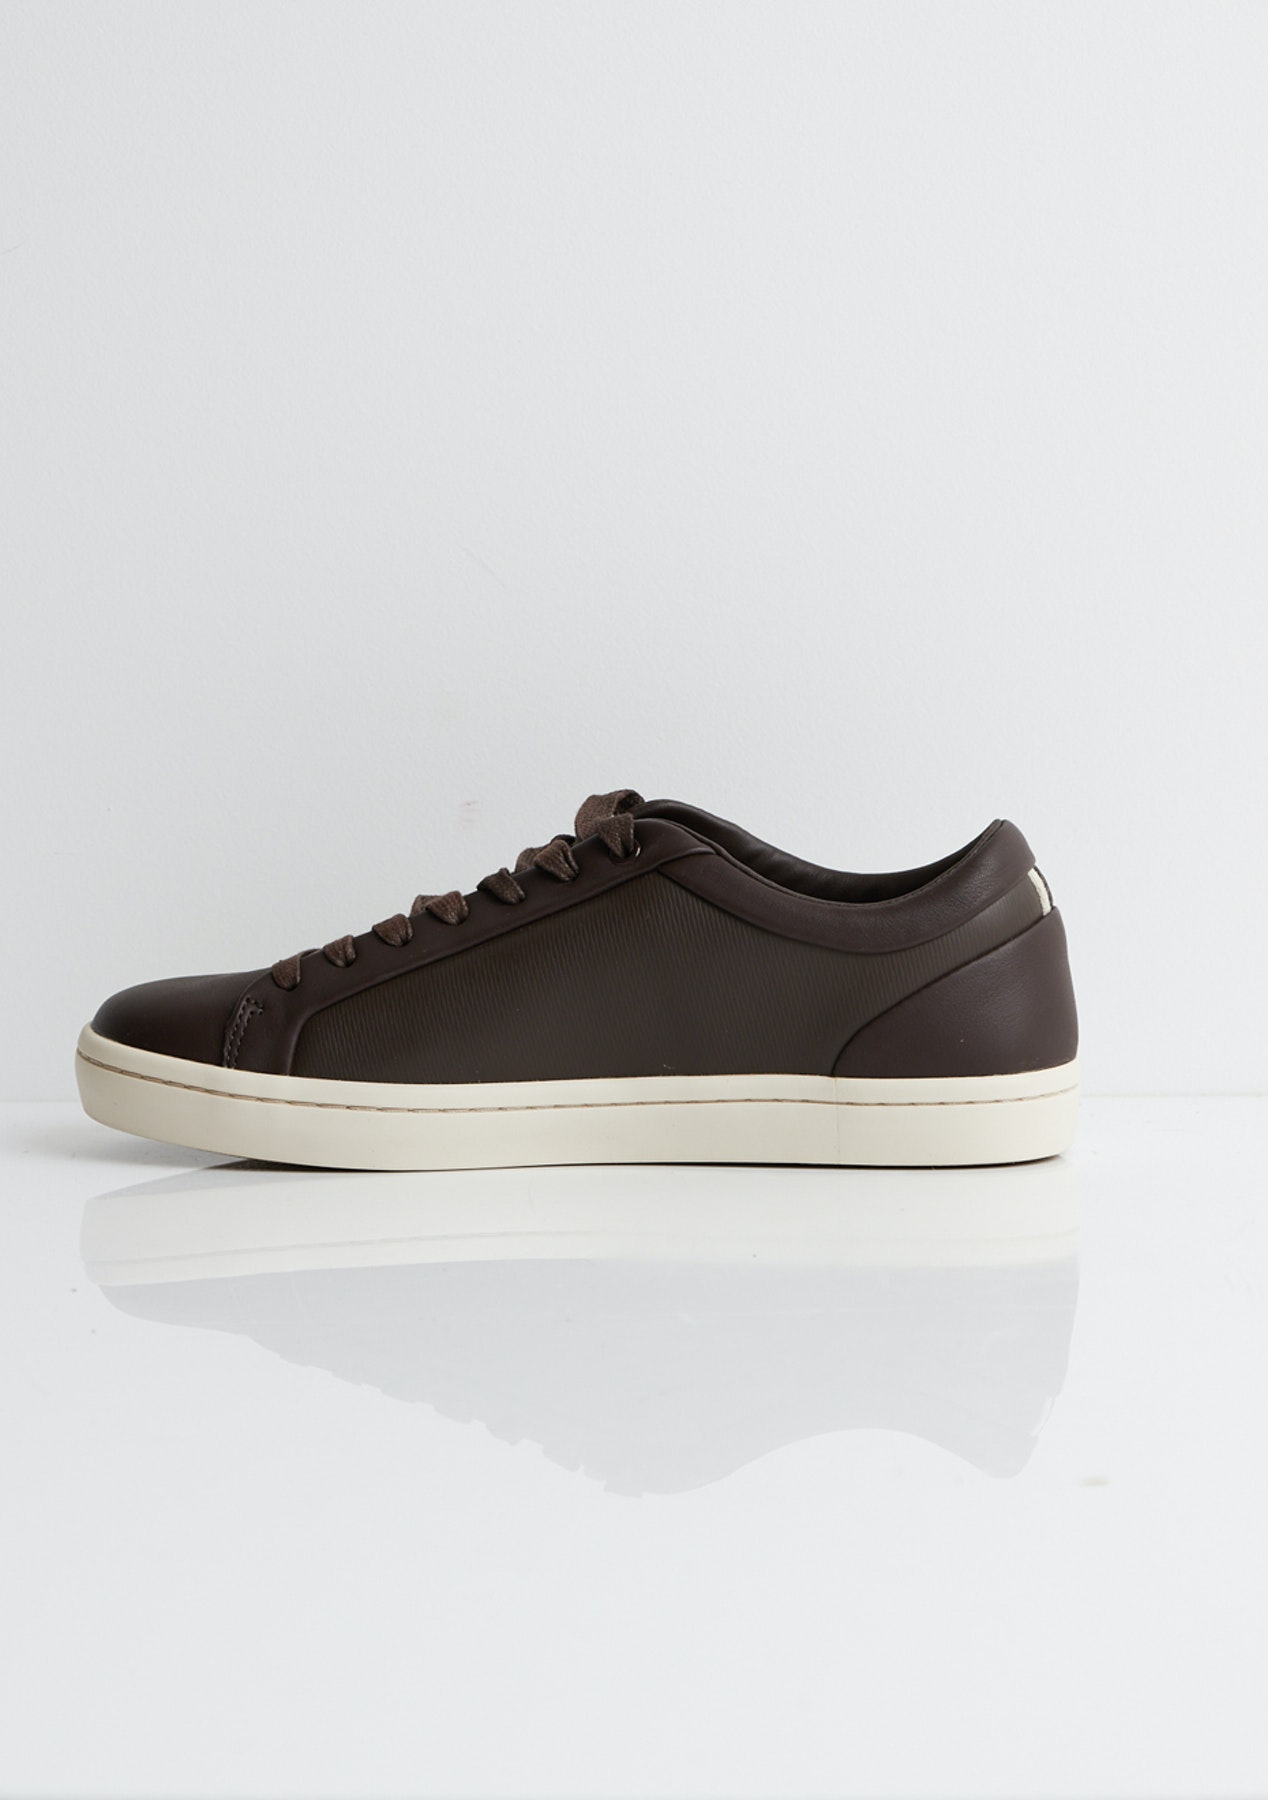 ea9648263 Lacoste Shoes - Mens - 49 - Big Brand Mens - Onceit